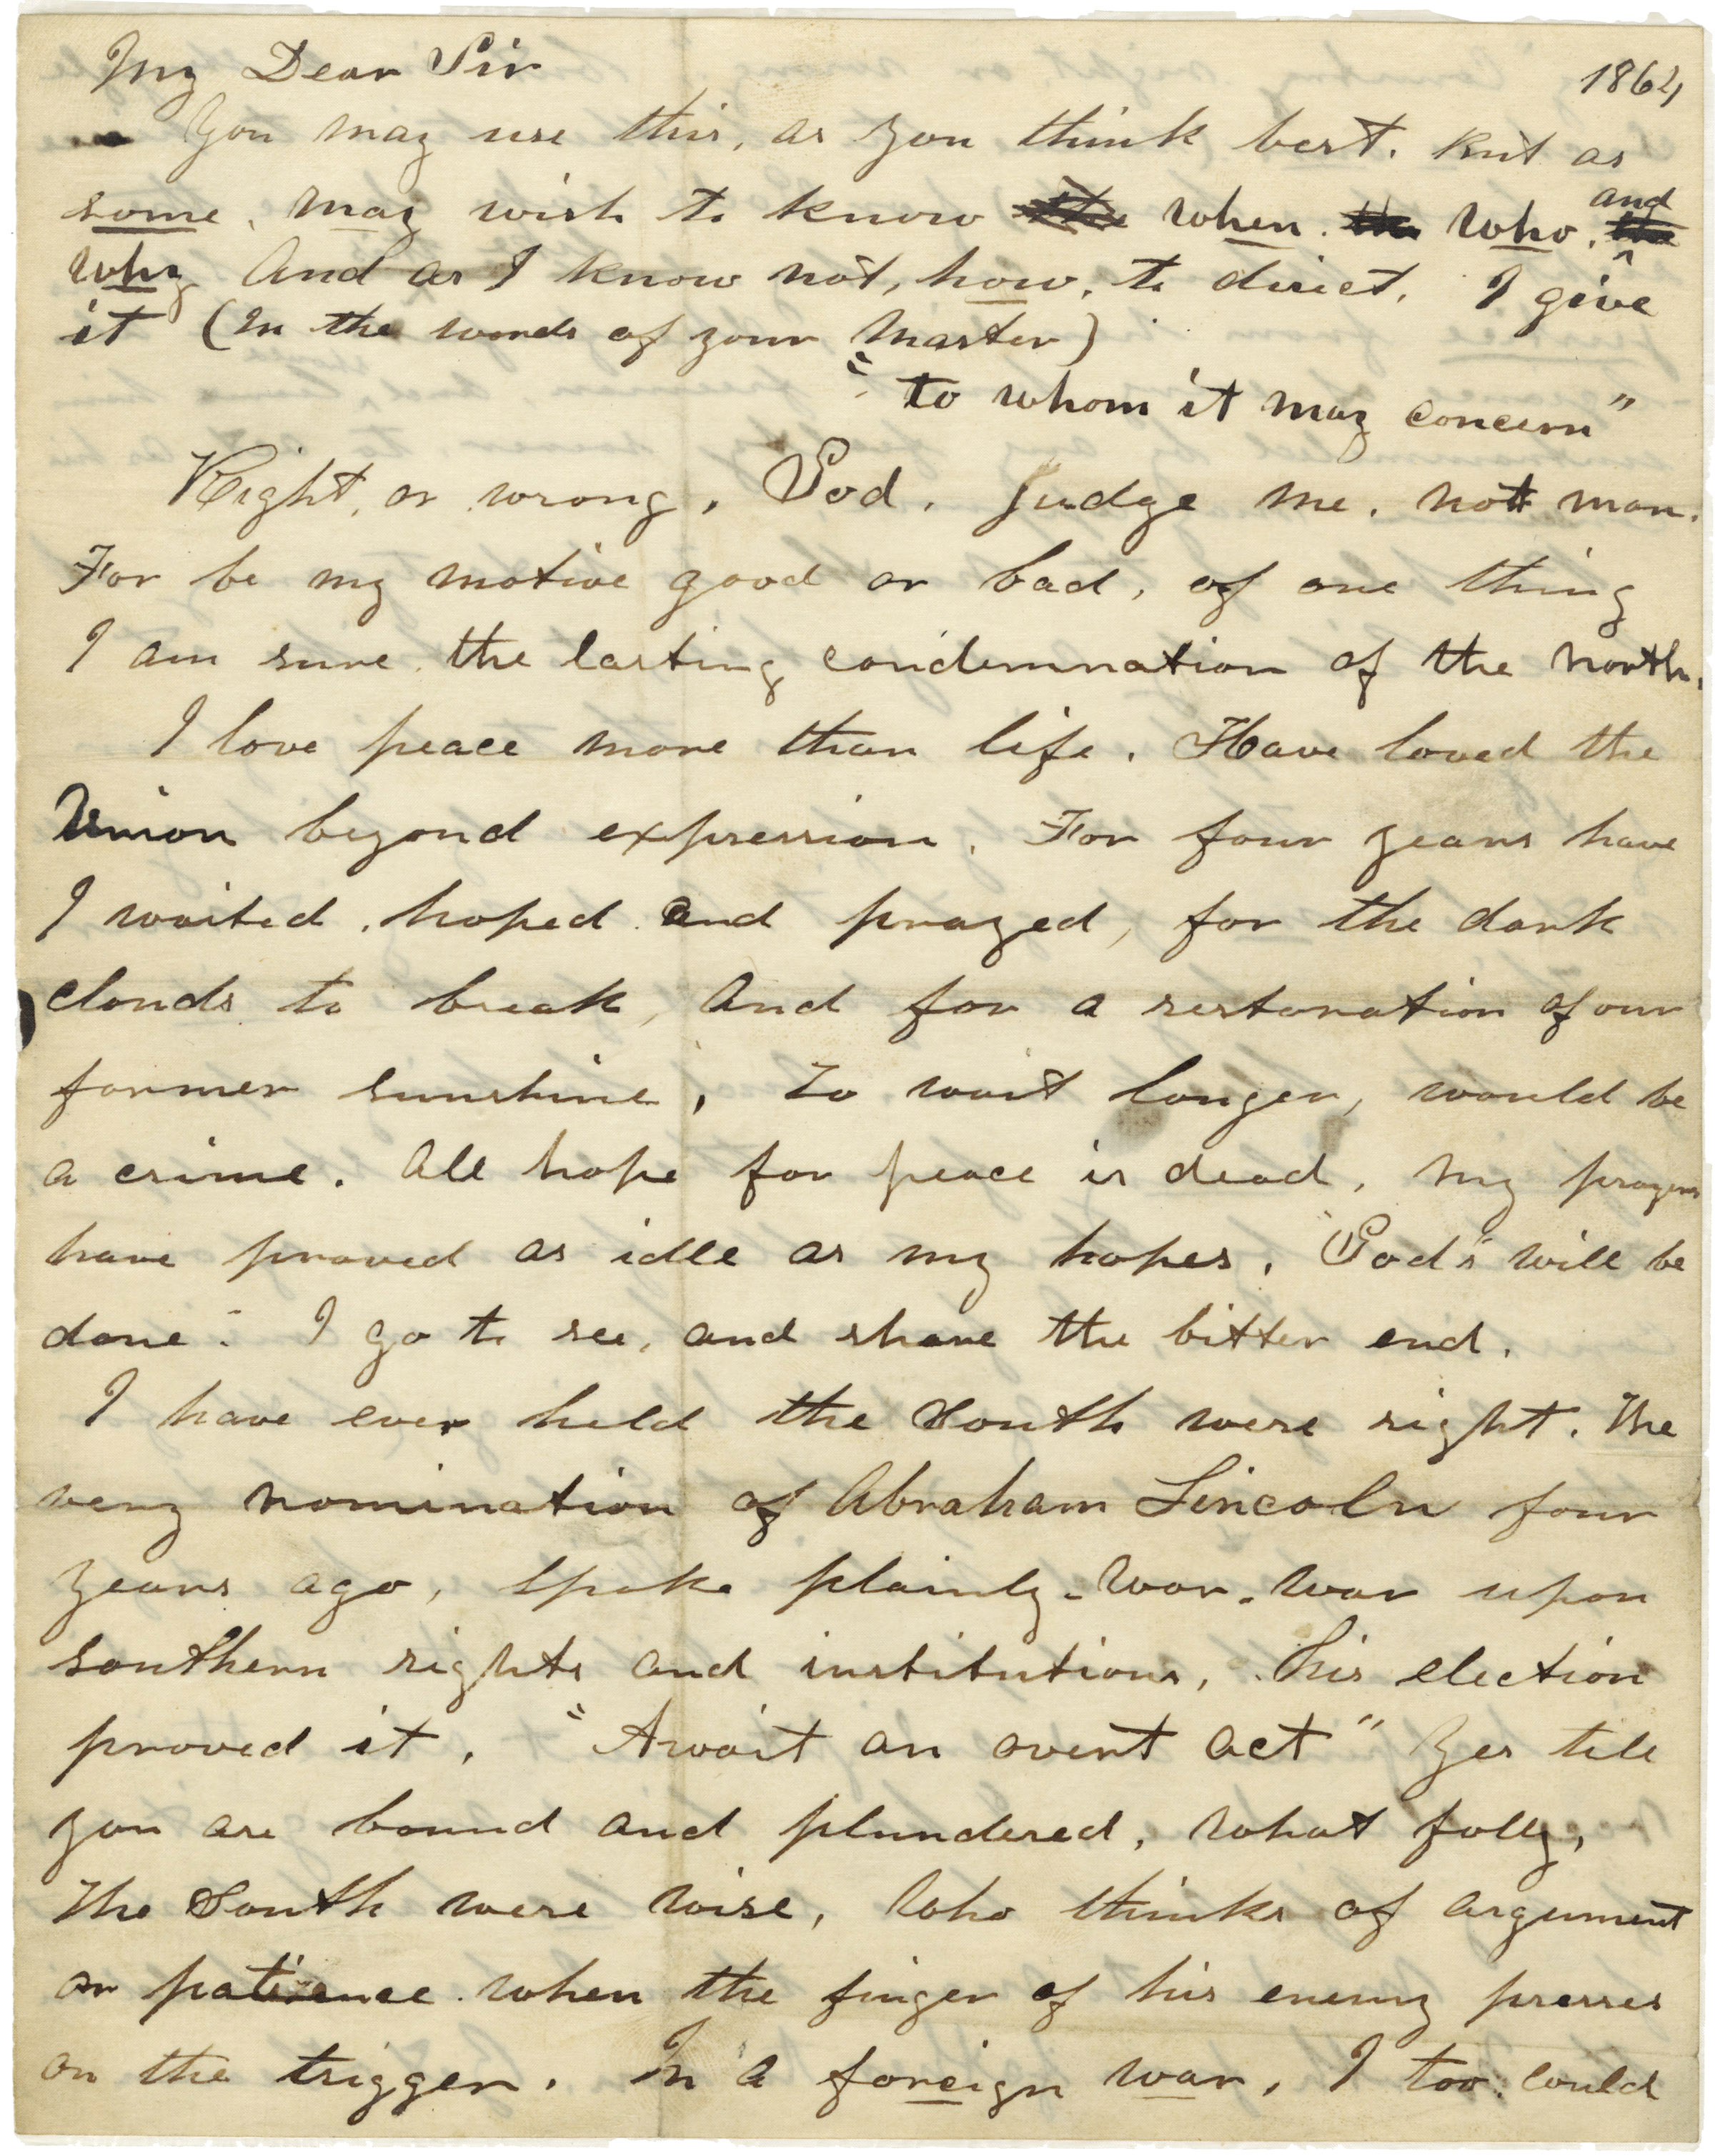 to whom it concern letter page 1 nara boothiebarn to whom it concern letter page 1 nara